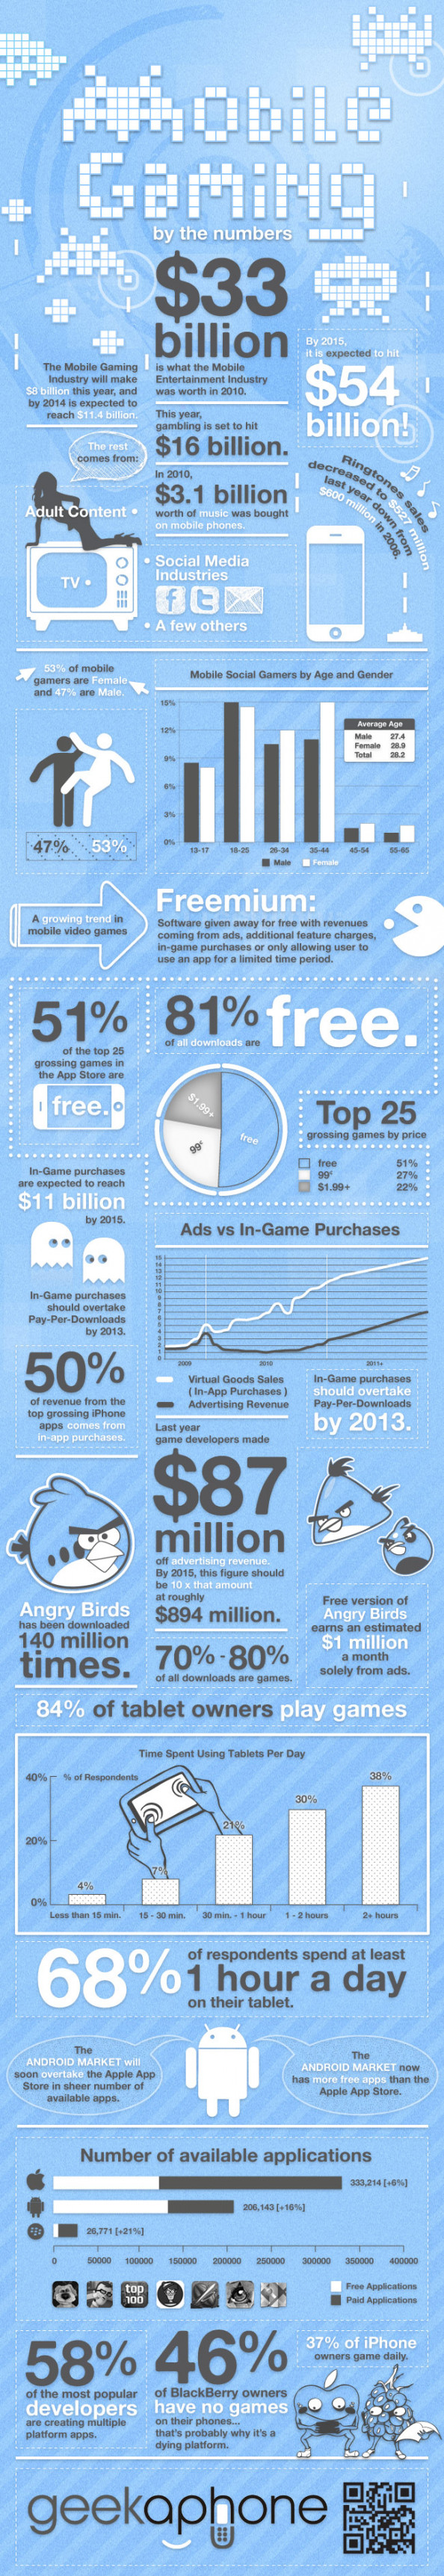 Mobile Gaming by the Numbers Infographic